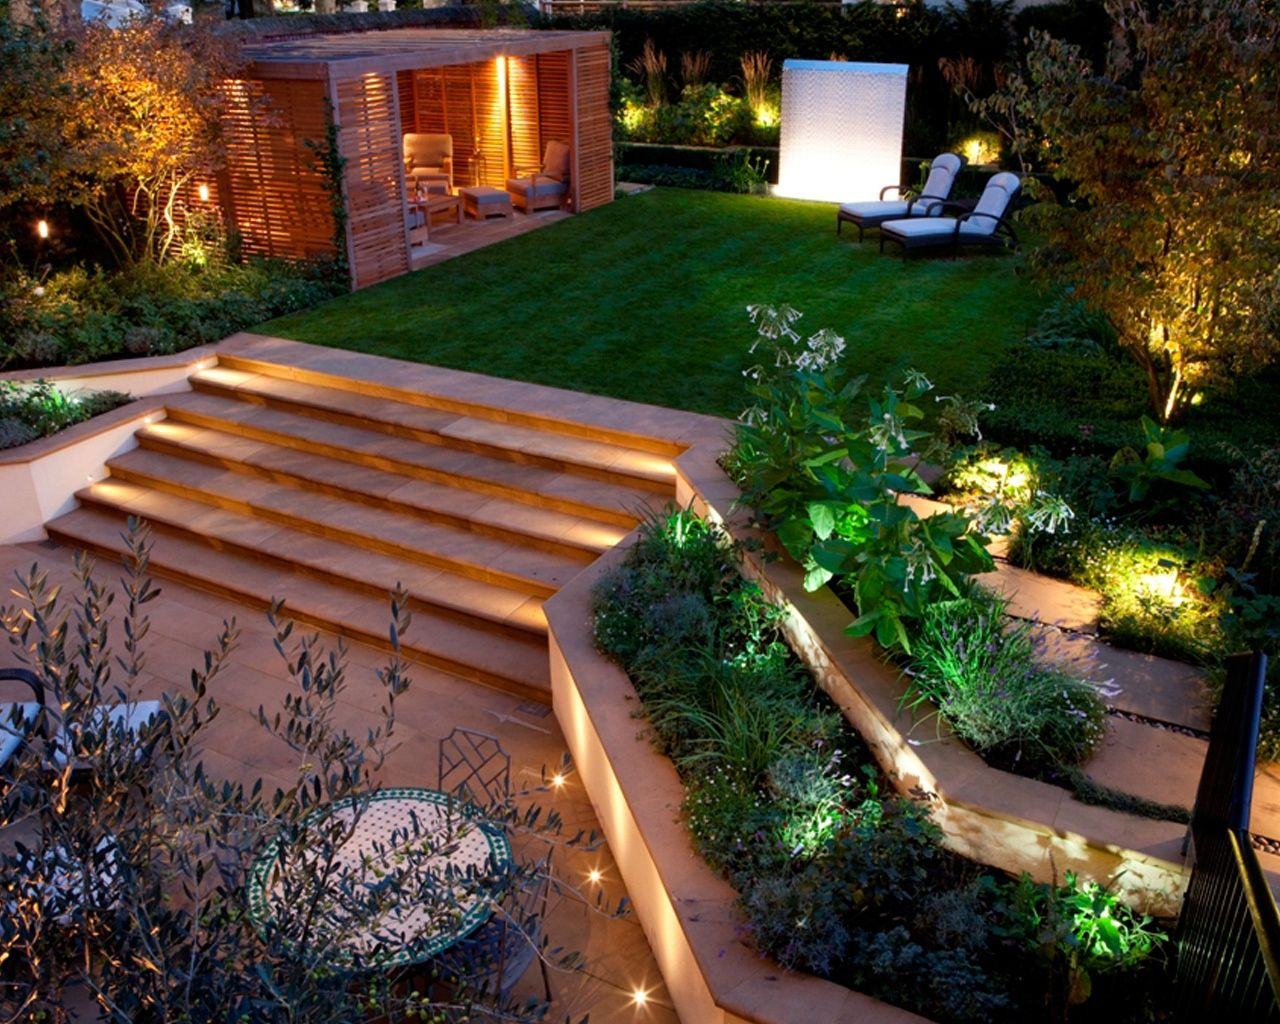 Garden Design Backyard best 25+ modern garden design ideas on pinterest | modern gardens